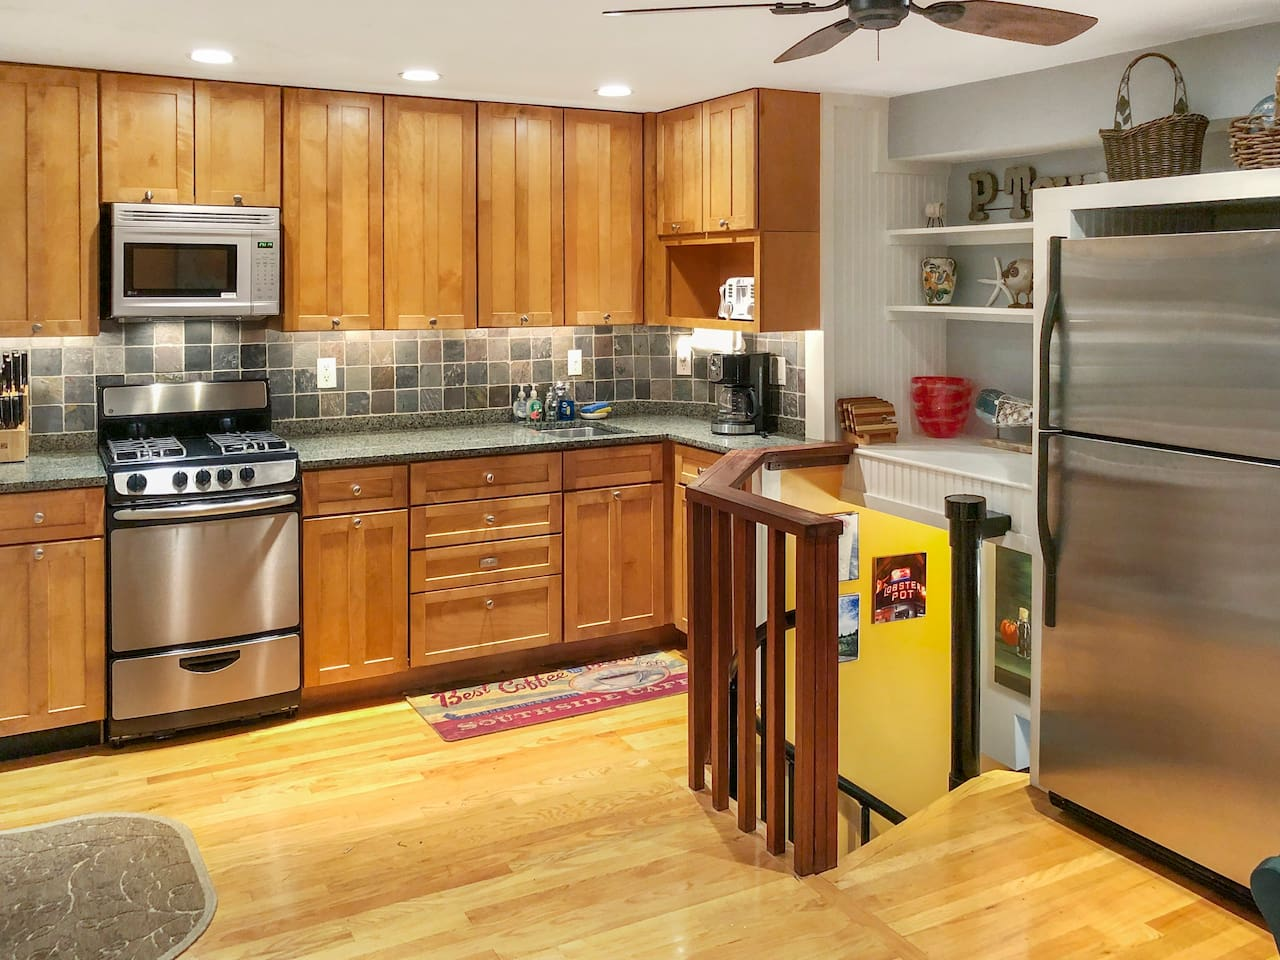 Fully stocked kitchen with stainless steel appliances, granite countertop, and slate backsplash.